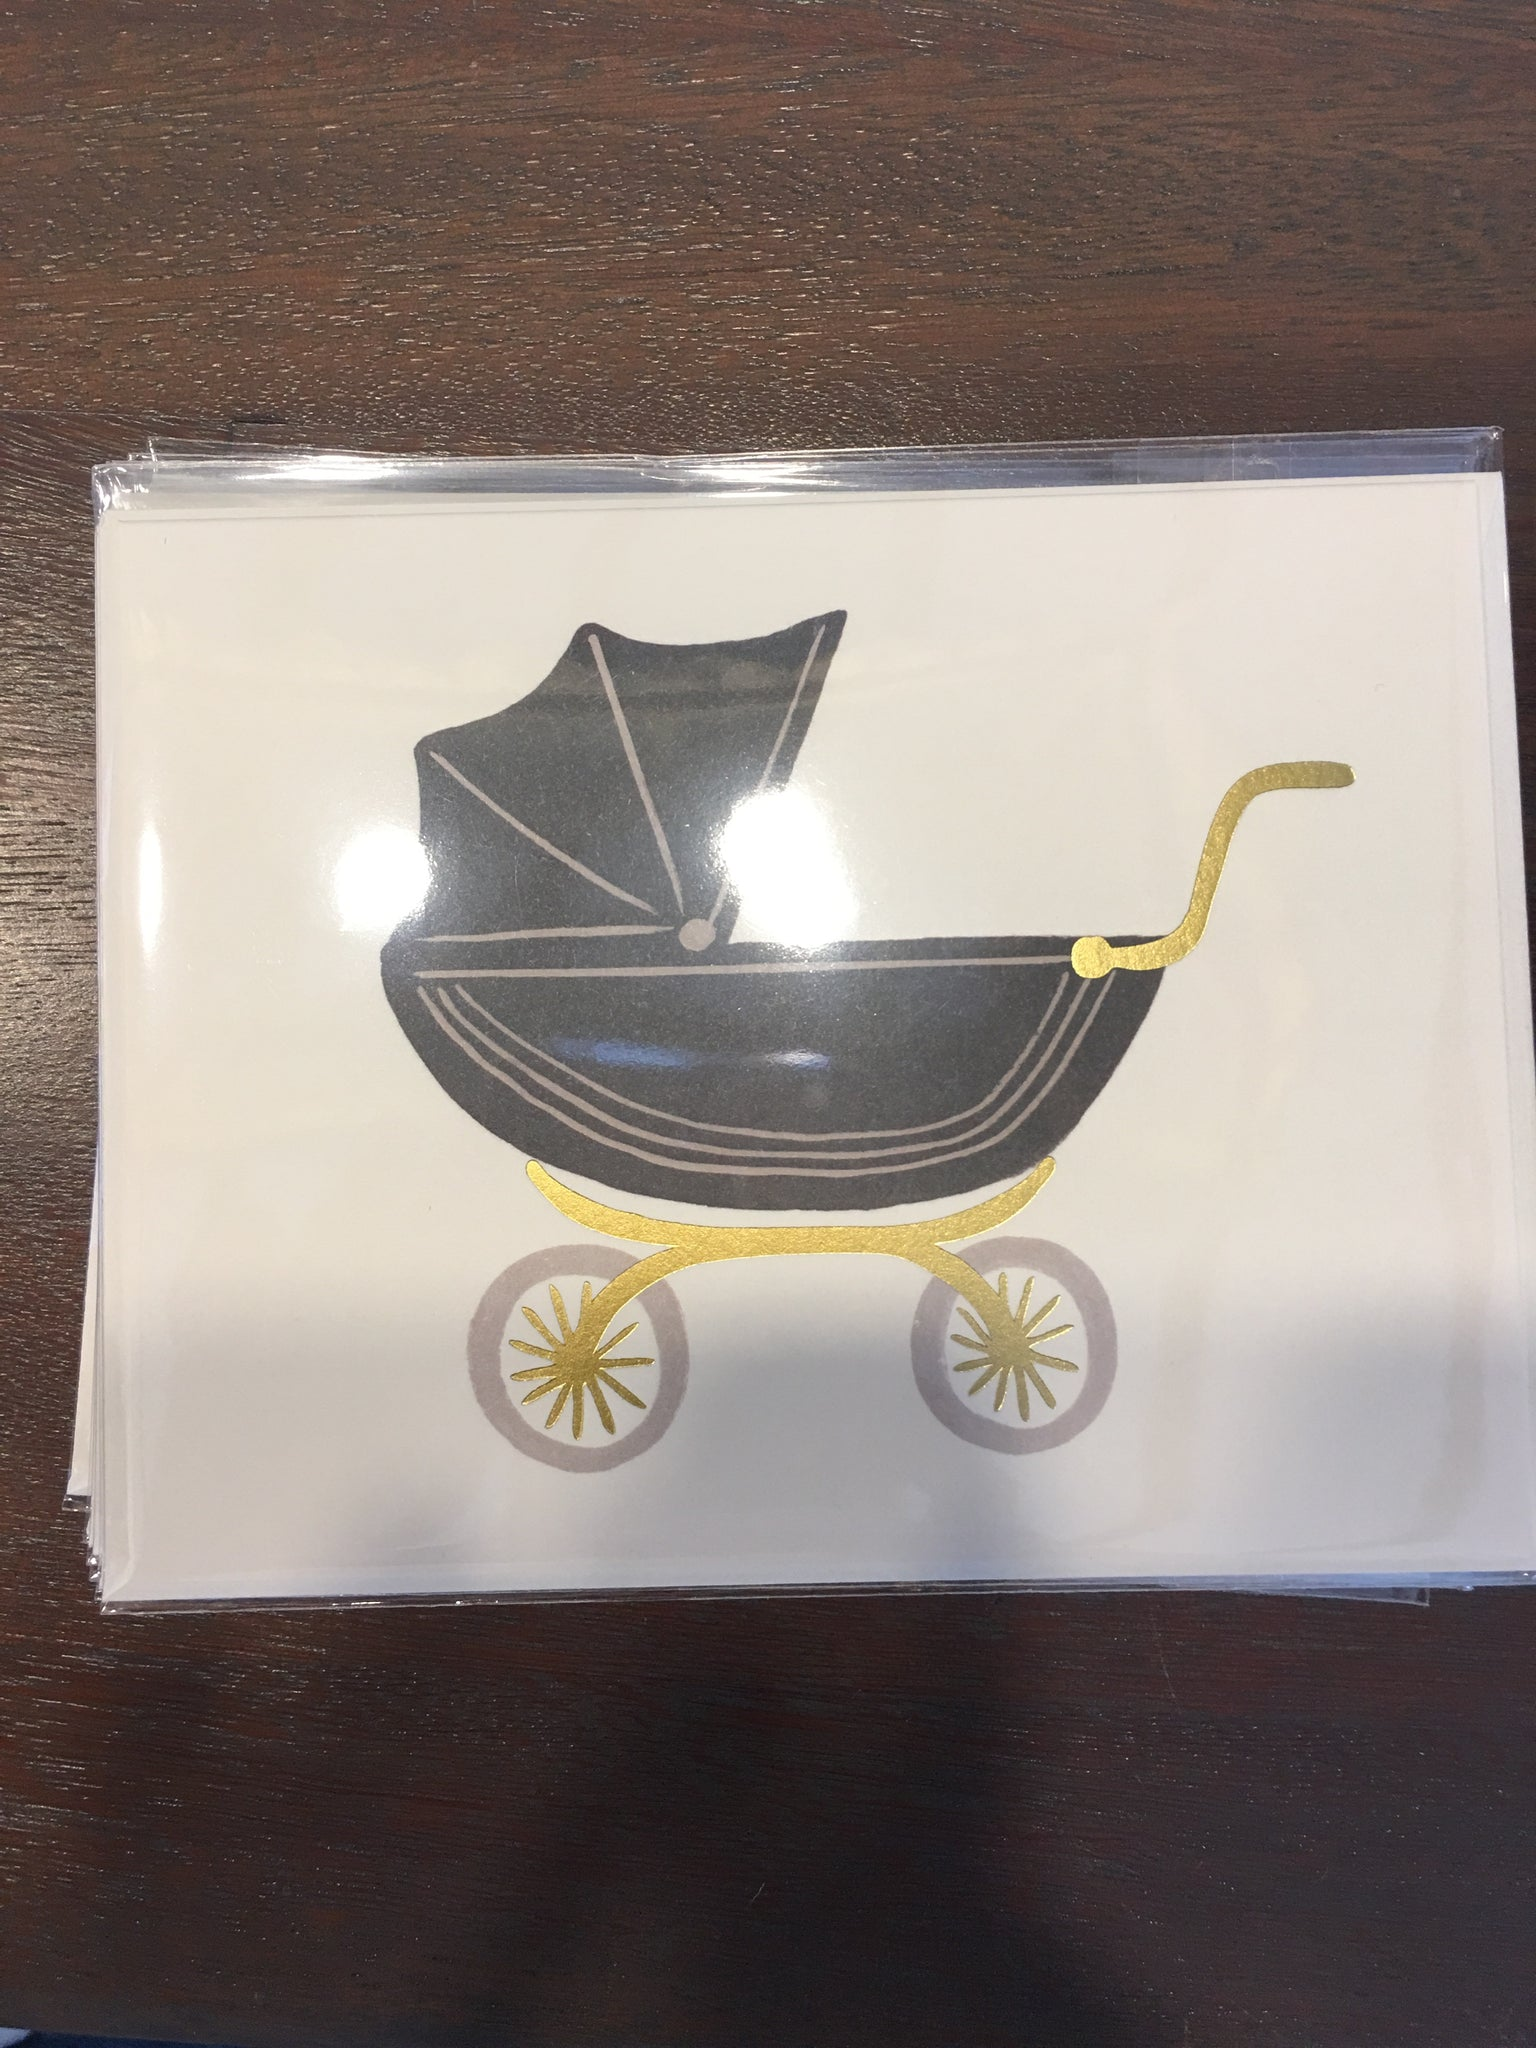 Baby stroller rifle card